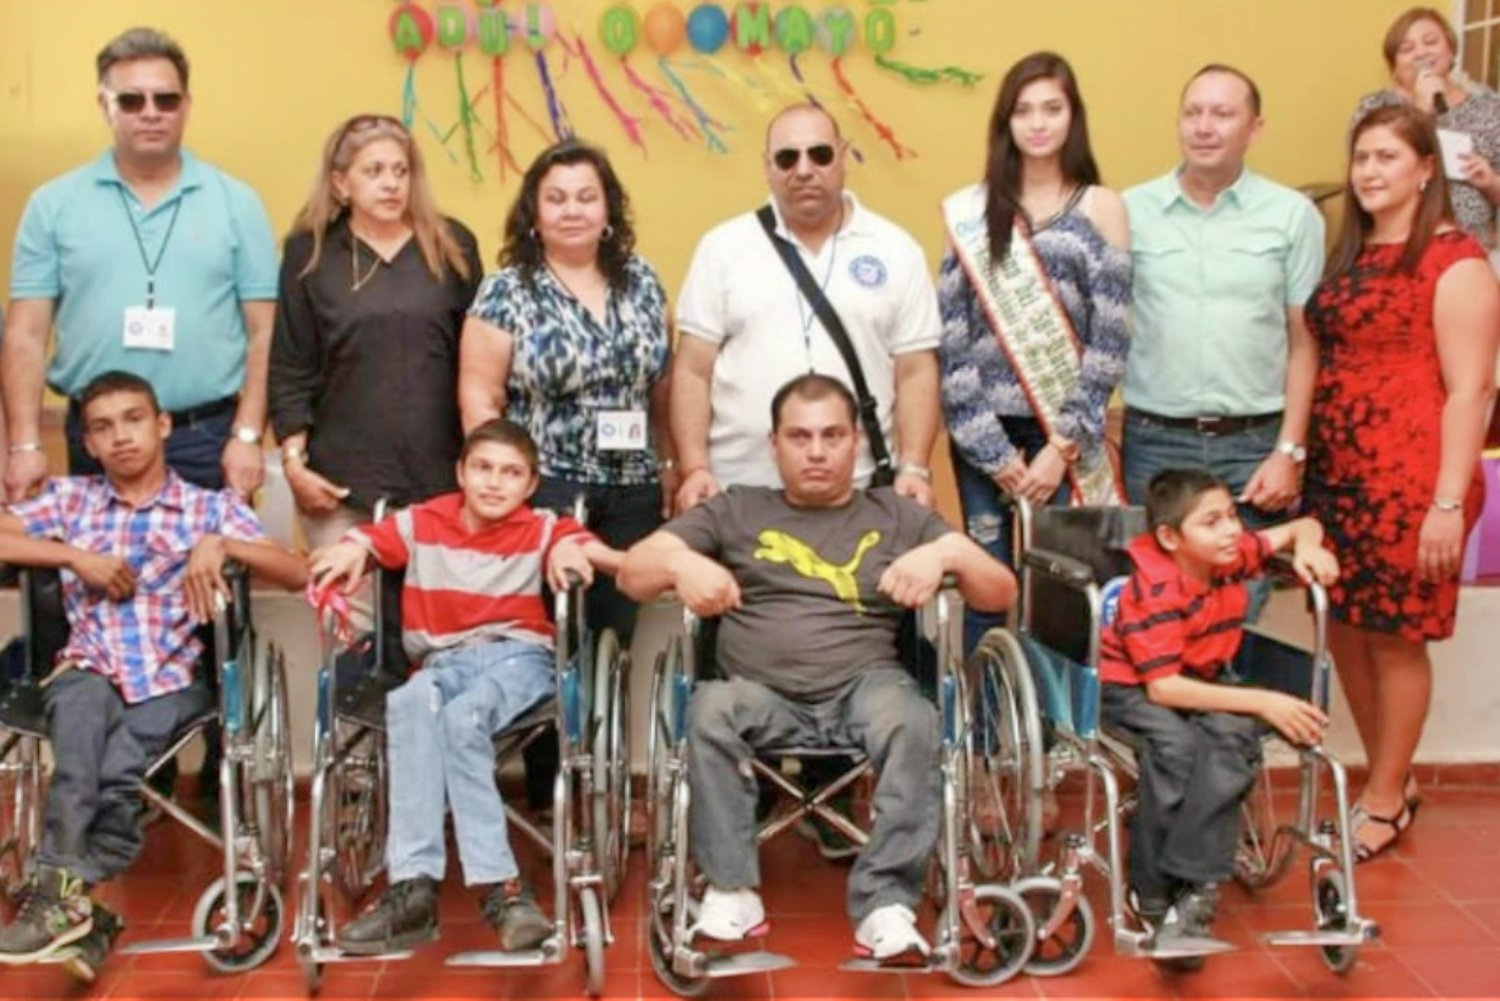 Through Comité Cívico Argentino, $1,000 was raised to buy wheelchairs in El Salvador for those who needed it with Kawaljit Chandi and Vivian Pereira, the presidents of Comité Cívico Saladoreño.